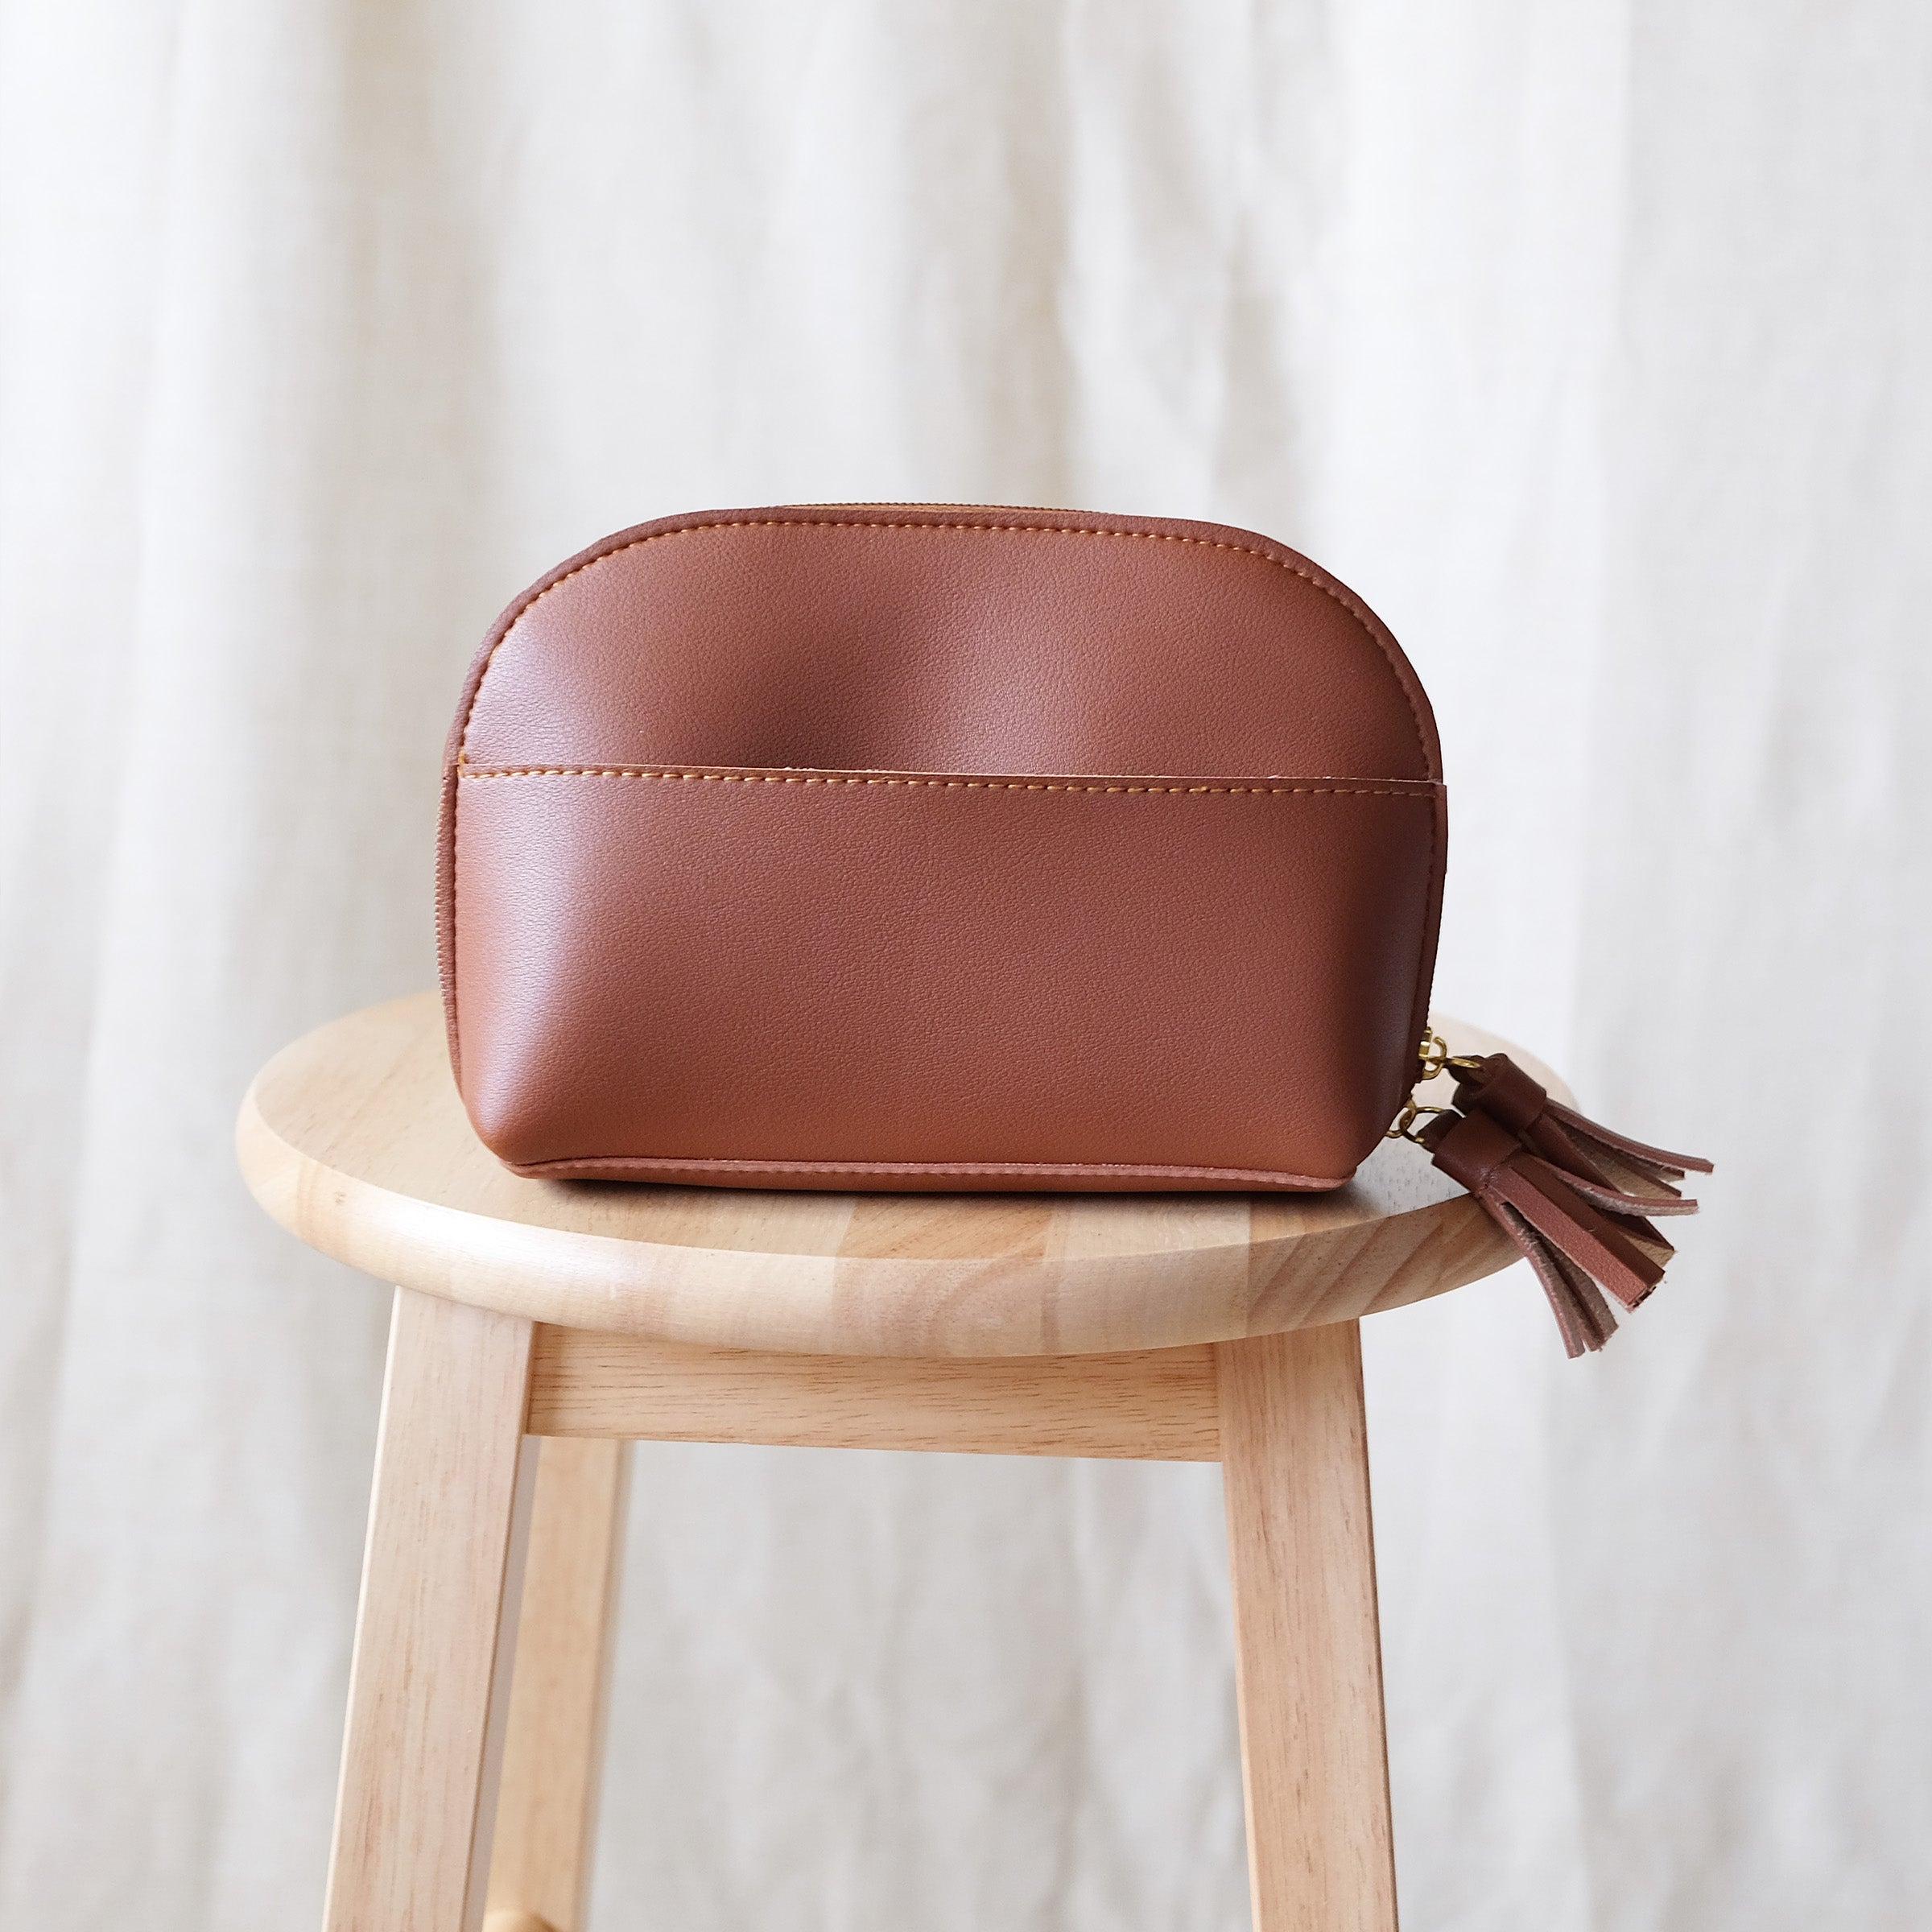 Clamshell Utility Kit in Tan